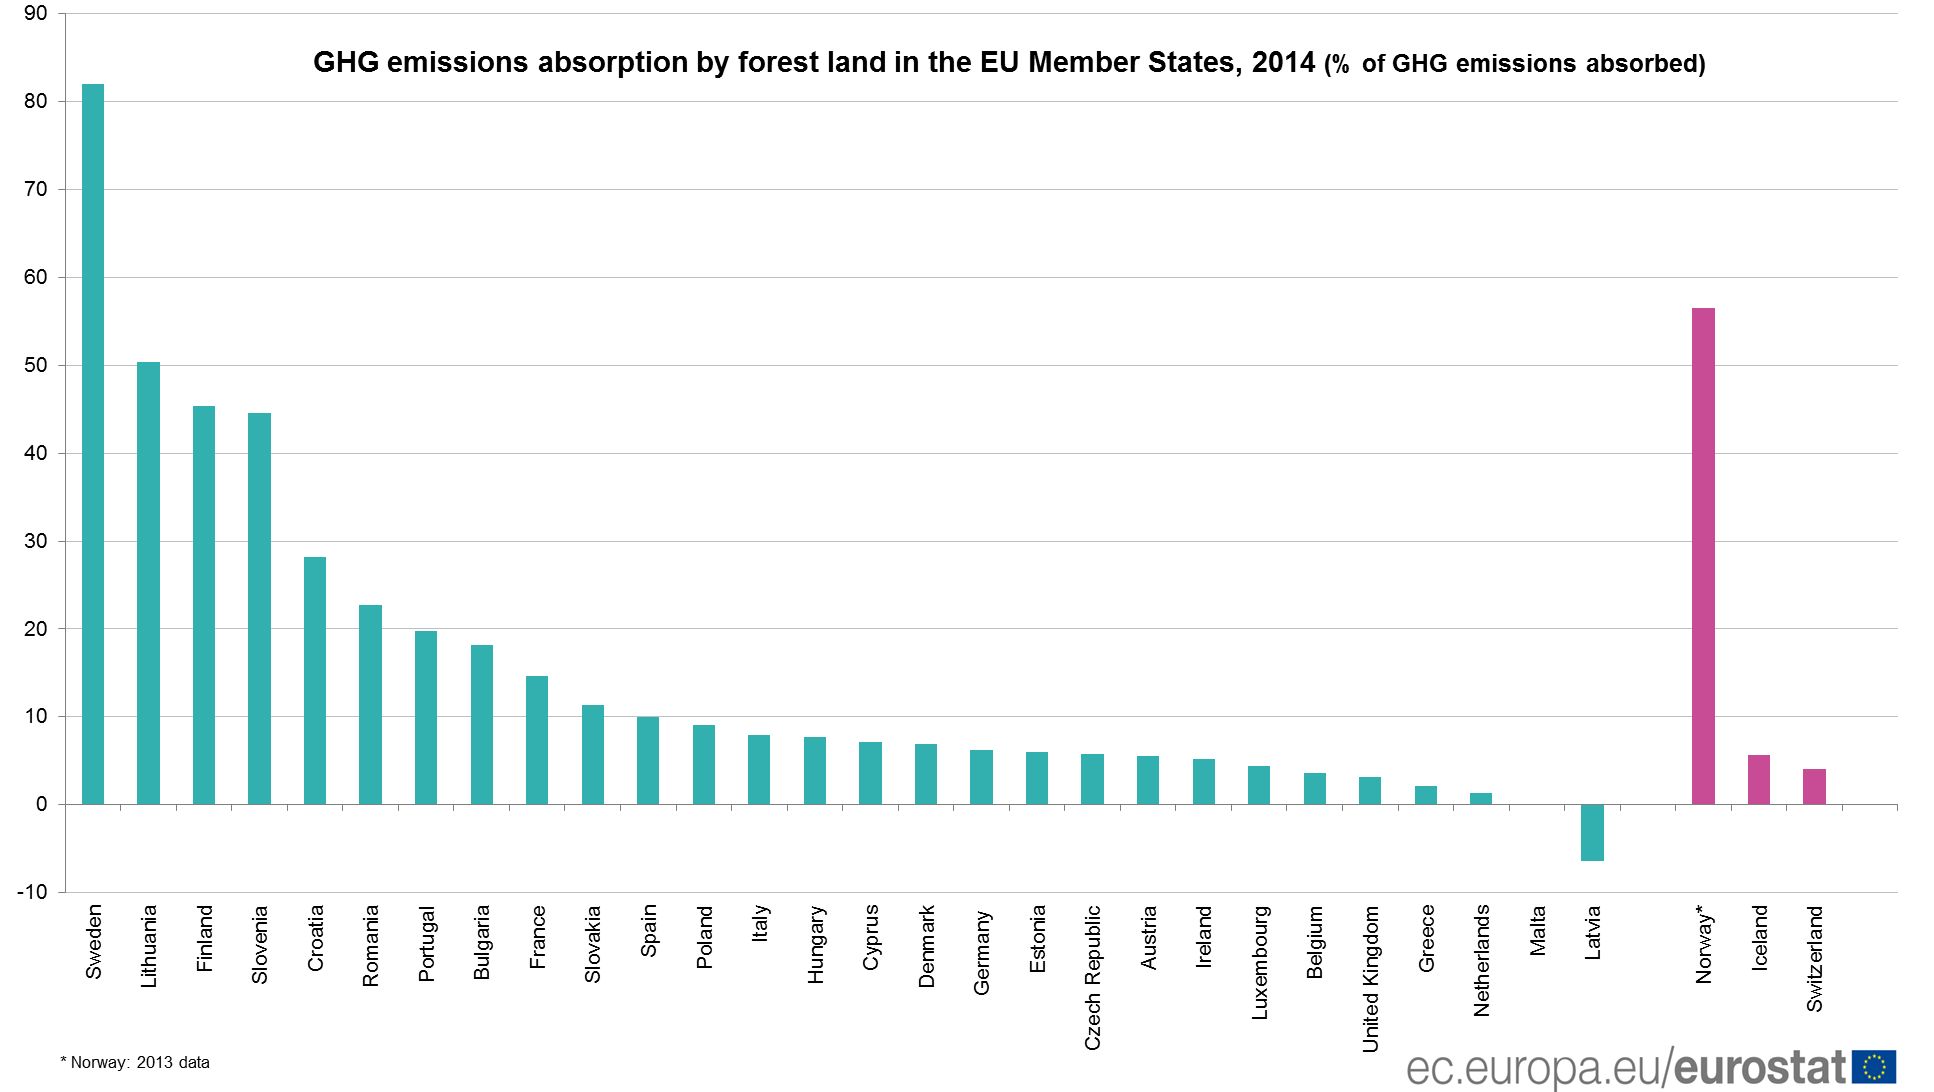 GHG emissions absortion by forest land in the EU, 2014